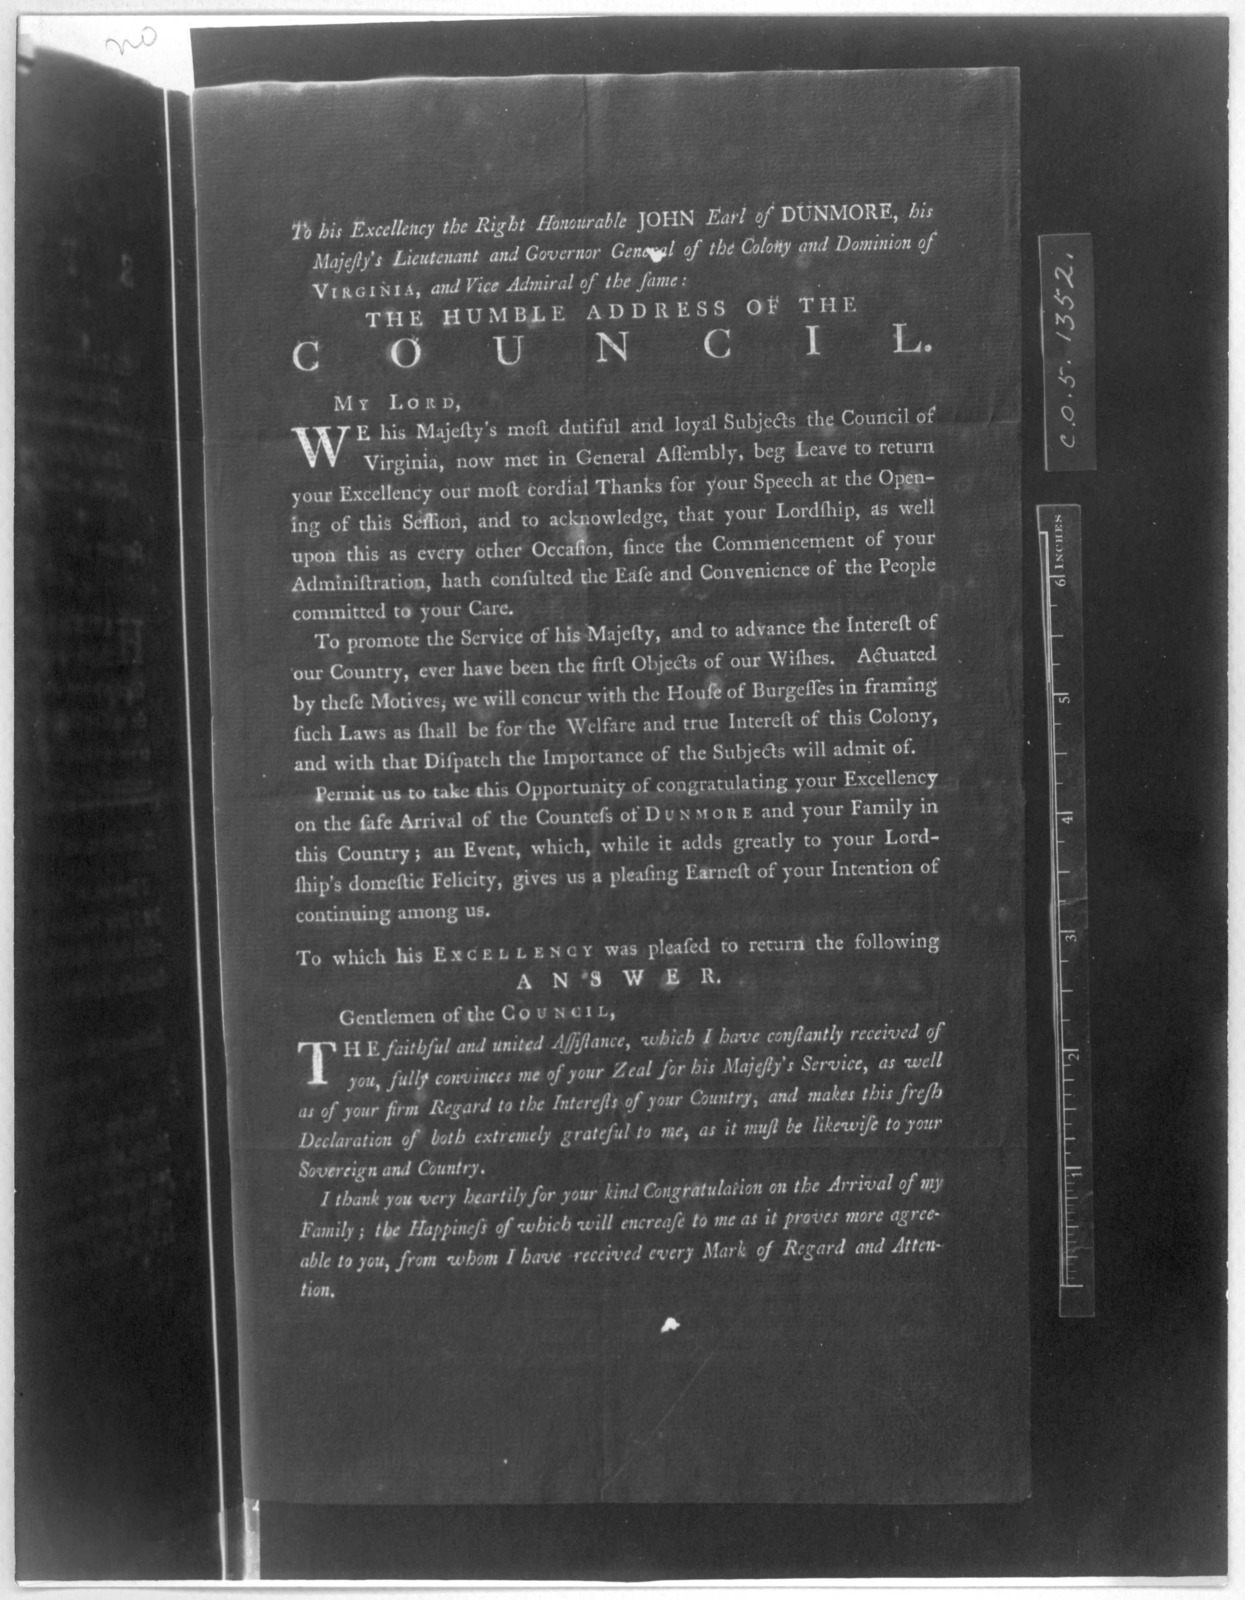 To his Excellency the Right Hon. John Earl of Dunmore, his Majesty's Lieutenant and Governor General of the Colony and Dominion of Virginia, and Vice Admiral of the same: The humble address of the Council. [Williamsburg, 1774]. [Negative Photost